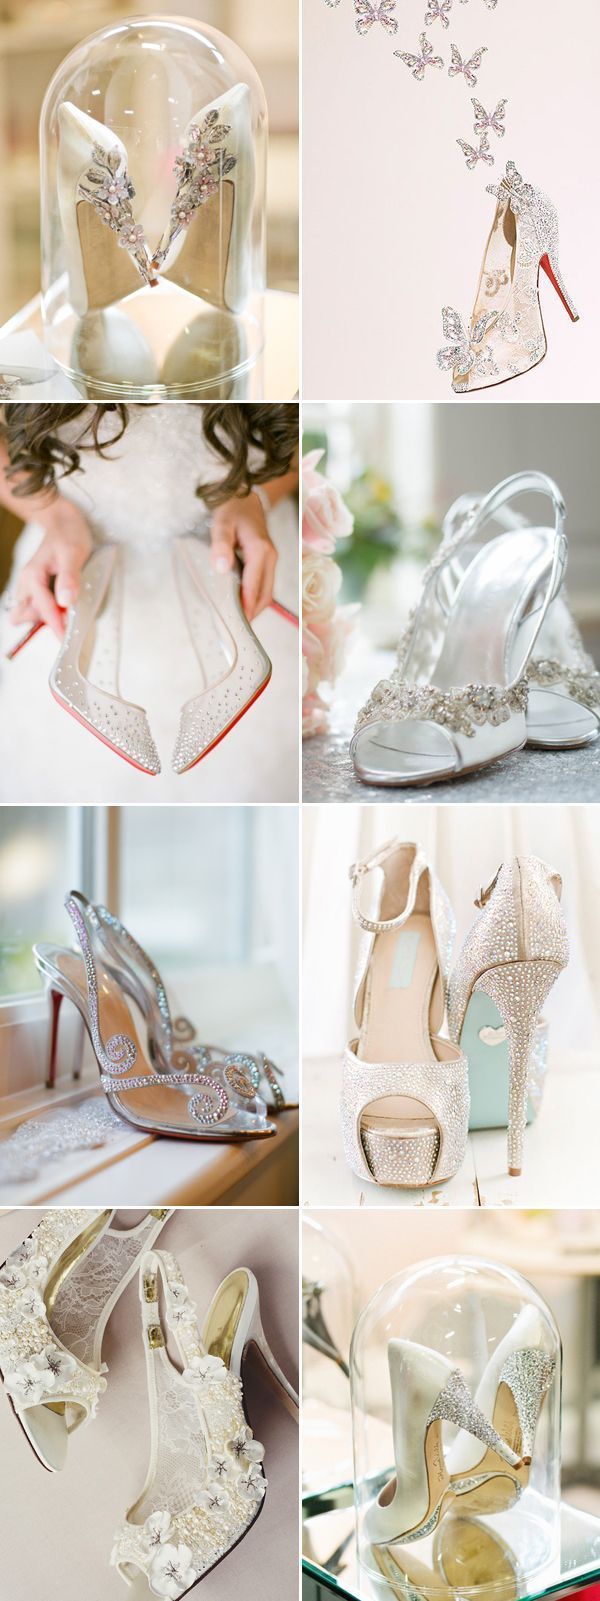 """Cinderella's glass slipper is definitely the most iconic """"dream shoes"""" of all time, and it is having its moment in the spotlight right now with the new live-action Cinderella movie in theaters! Prepare to be stuck by major shoe envy today as we share some of our favorite princess-worthy Cinderella -inspired bridal shoes! What we …"""